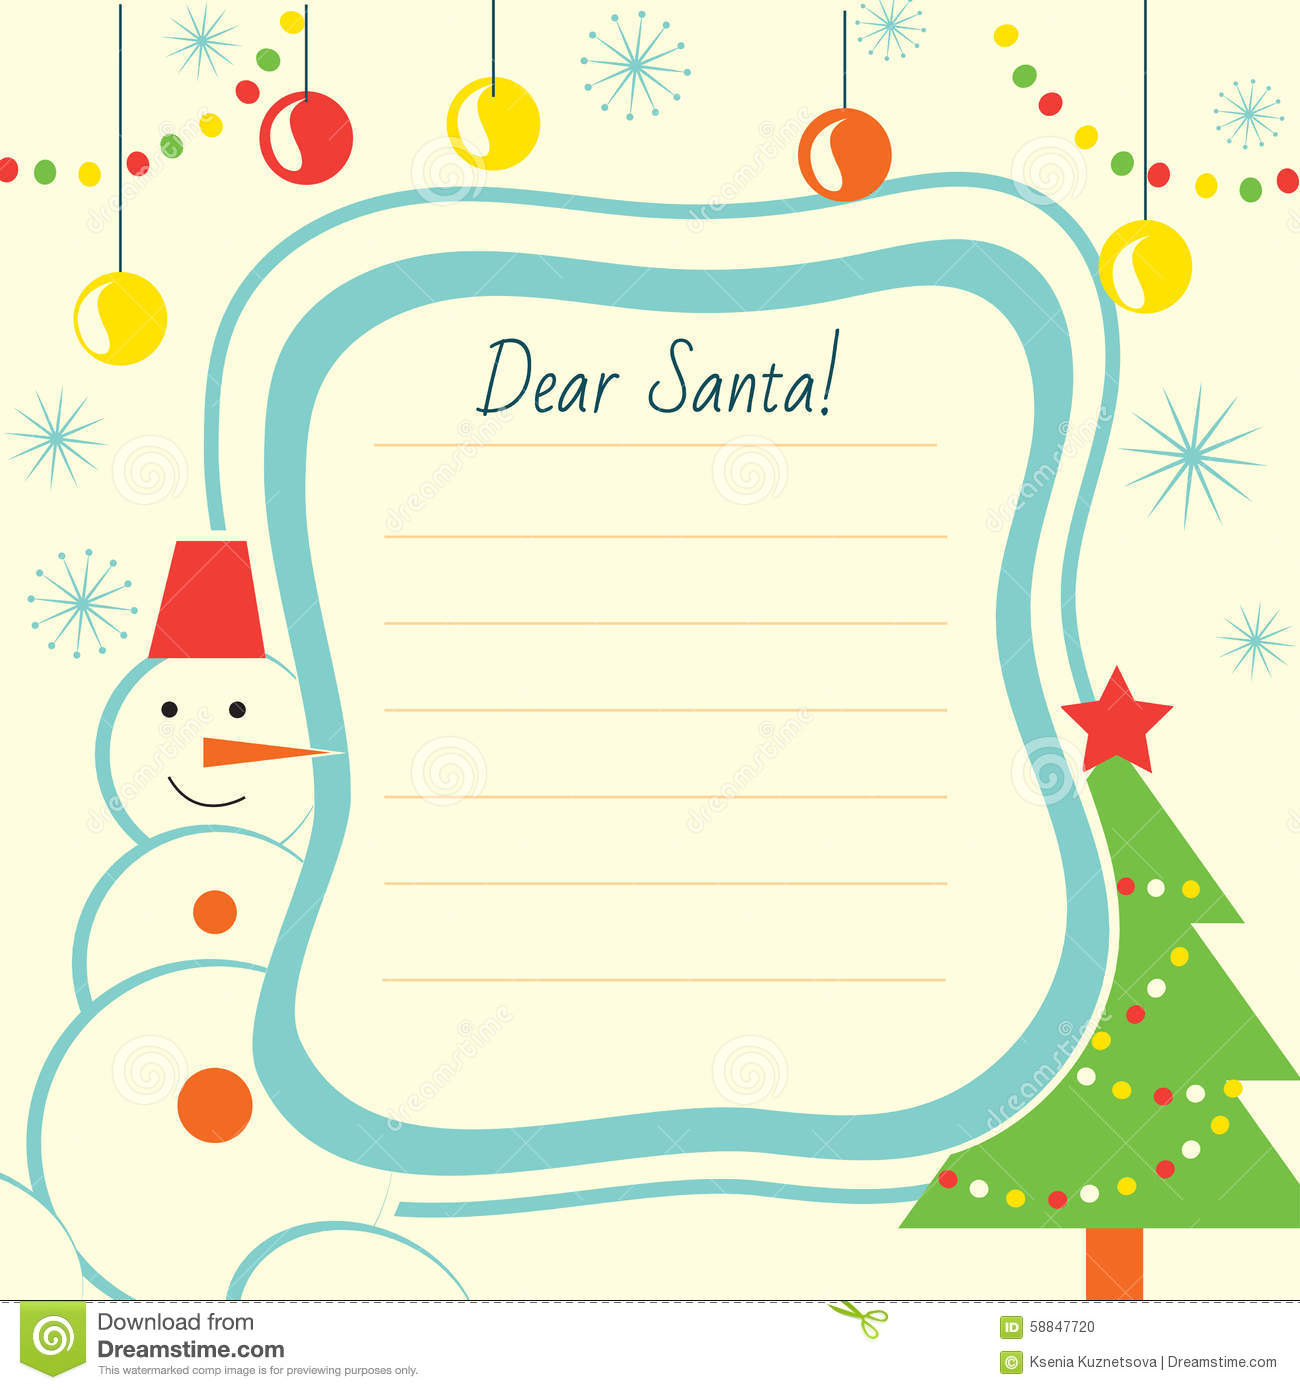 A Letter To Santa Template: Christmas Printables